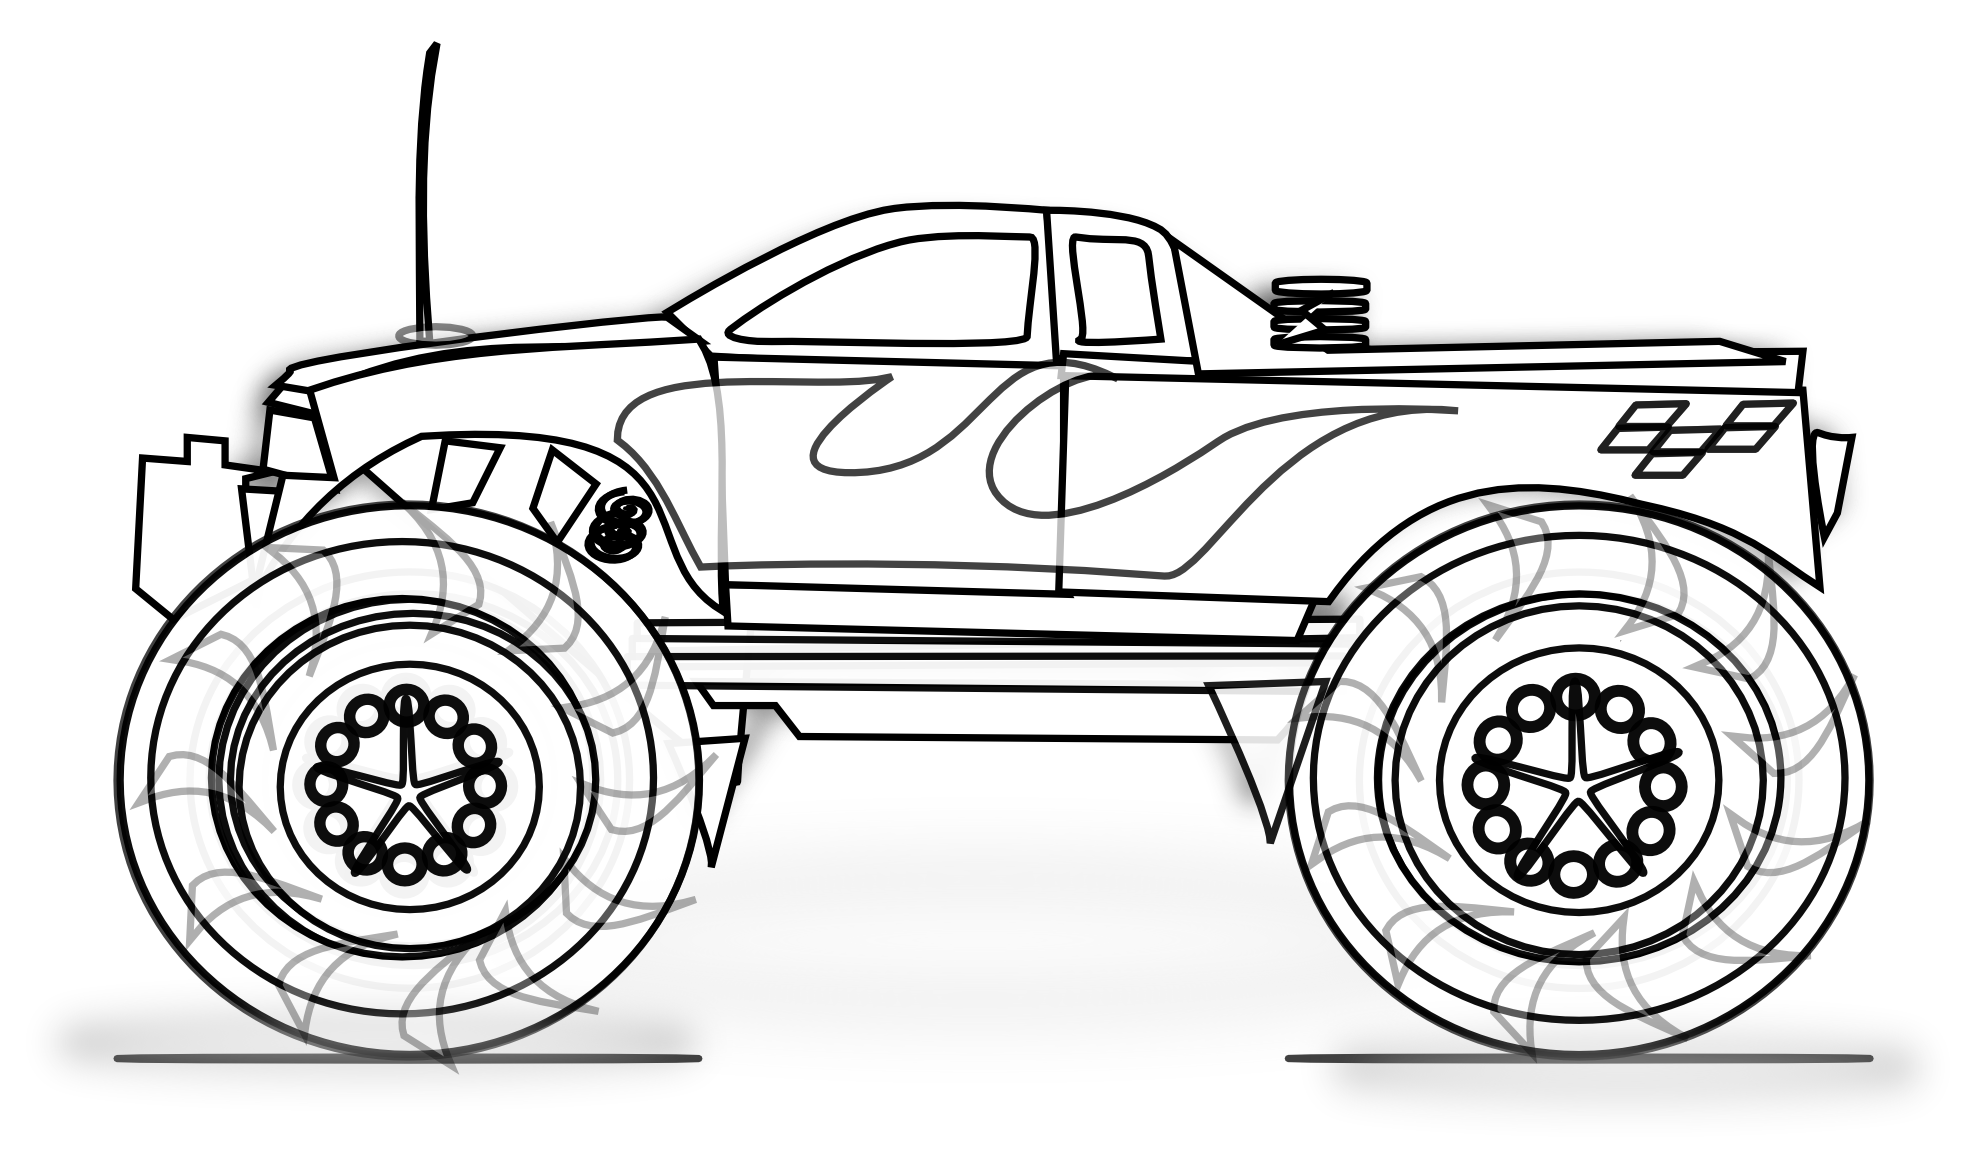 coloring pages for kids truck toy truck coloring pages at getdrawings free download coloring truck for kids pages